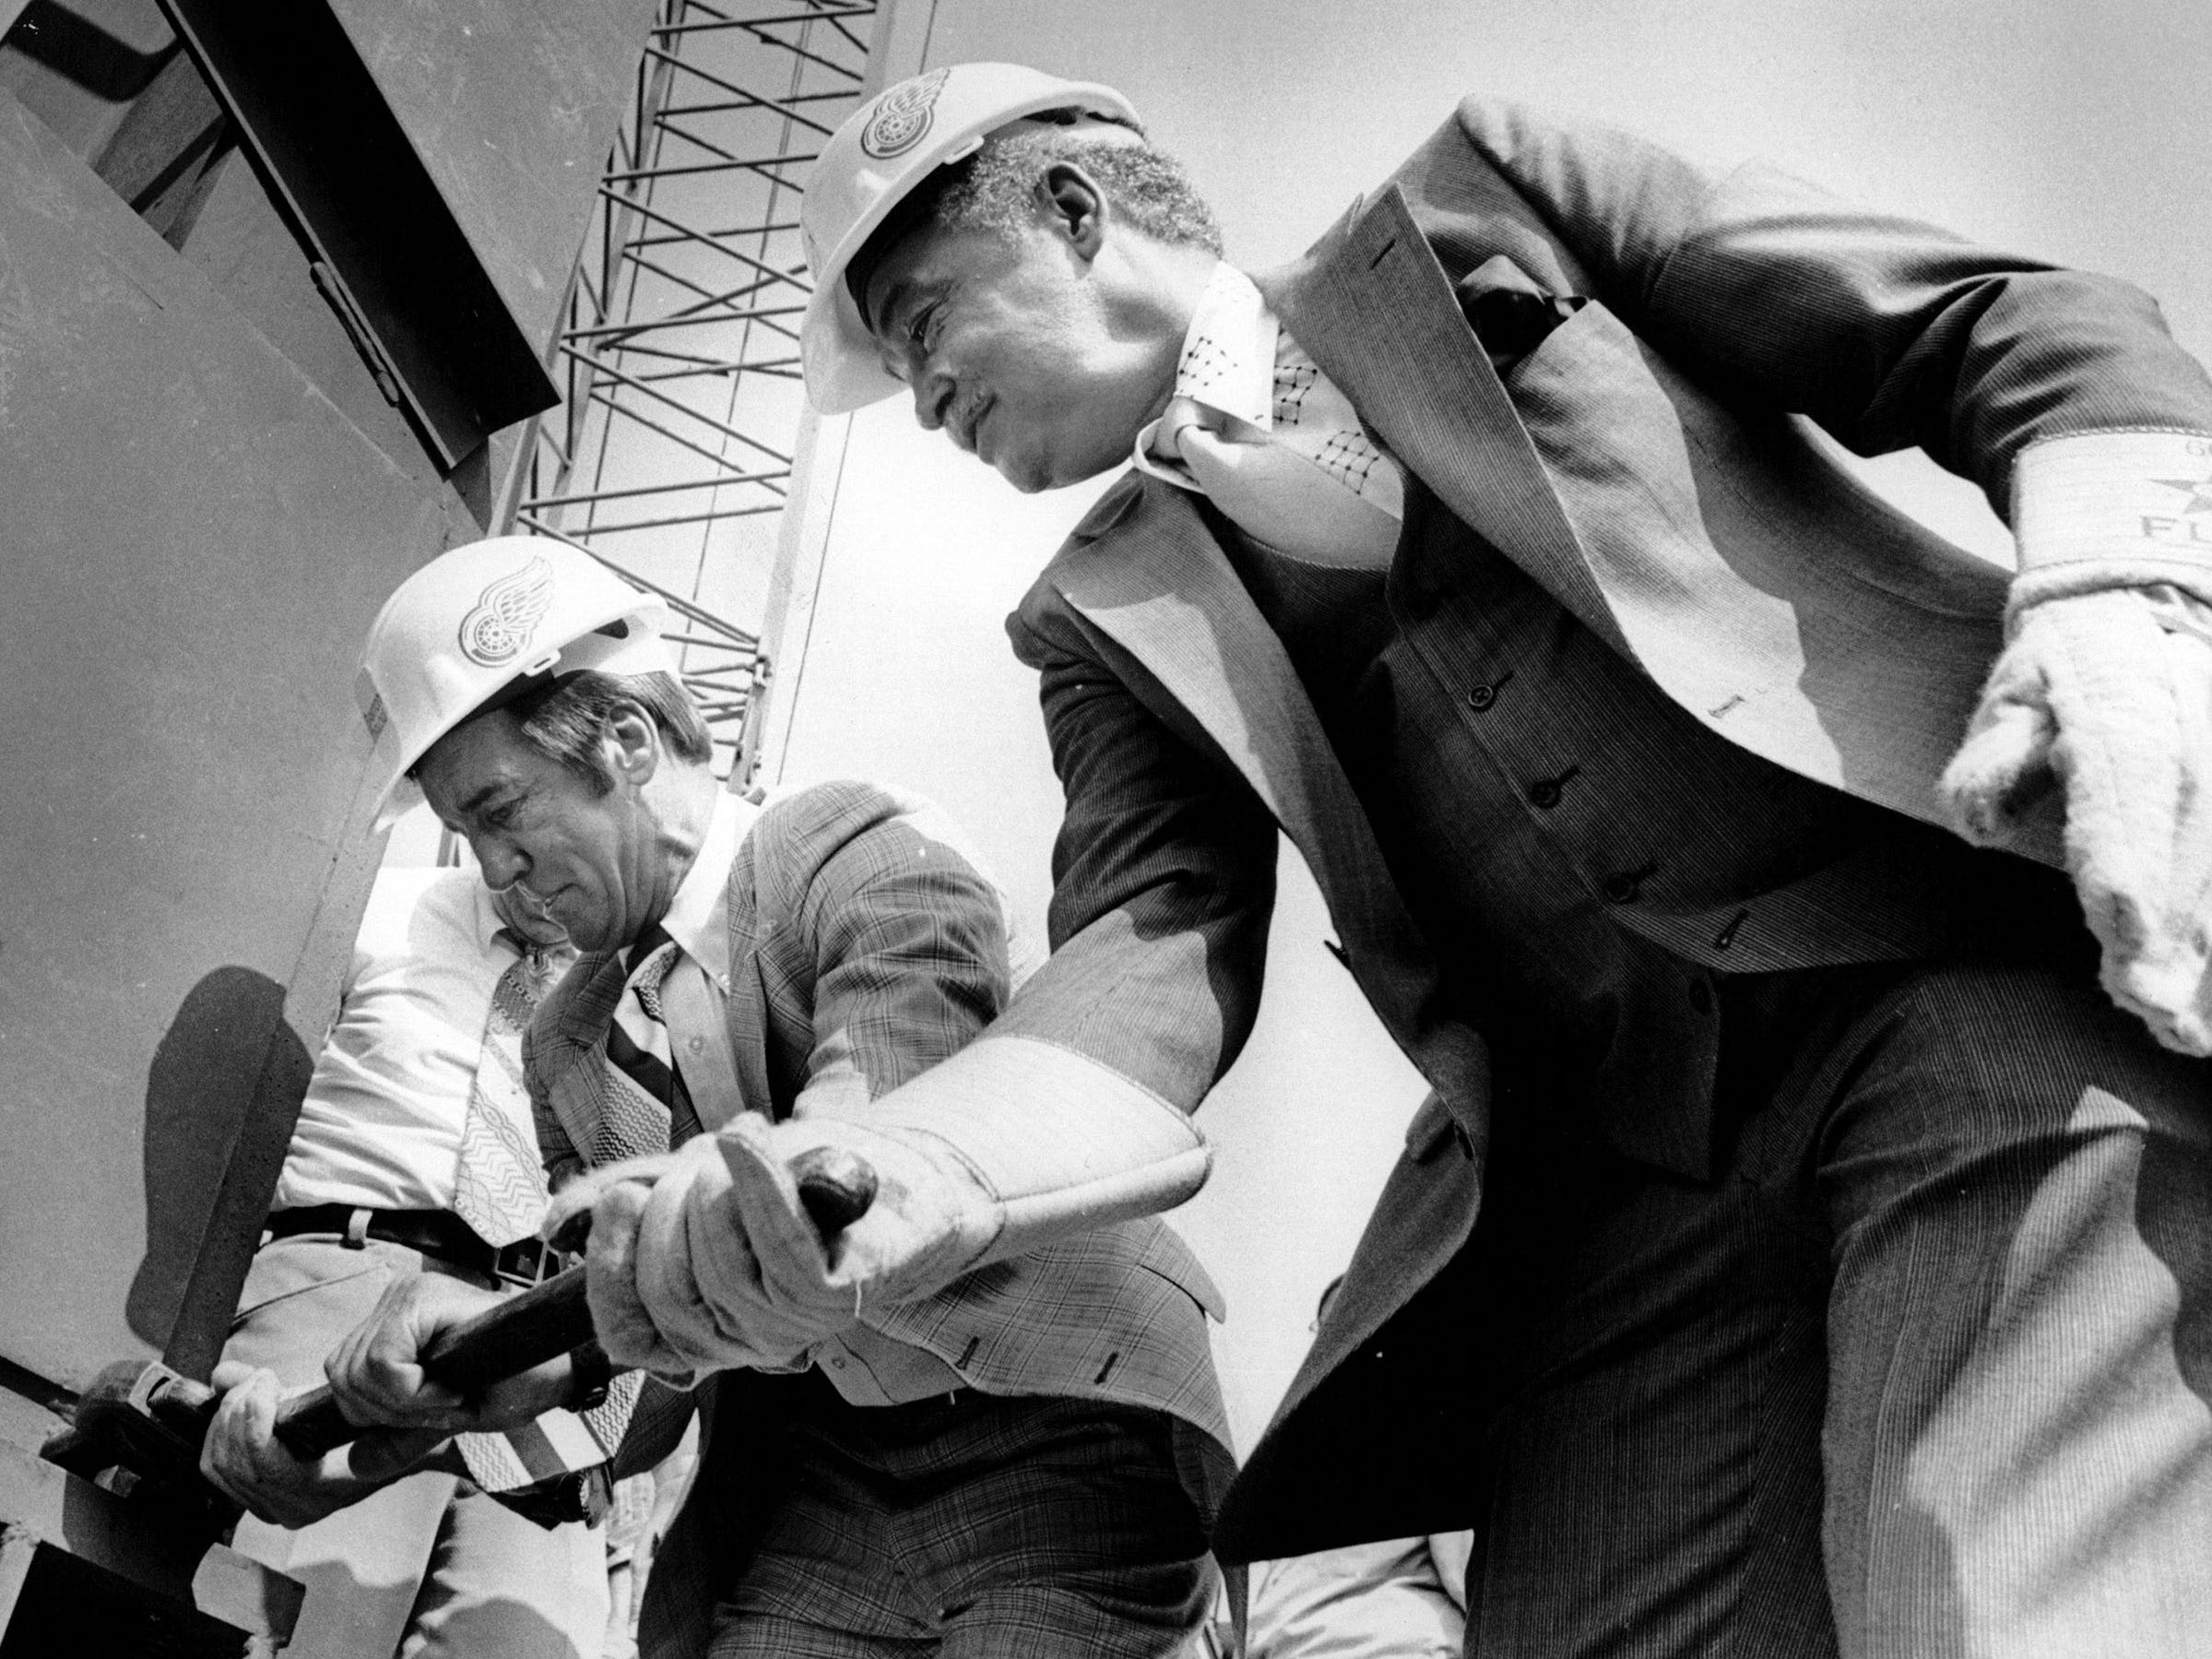 Ted Lindsay from the Red Wings and Coleman Young, Mayor of Detroit, turn a nut that secures a 21 ton column that will support roof girders at Joe Louis Arena in Detroit in August 1978.